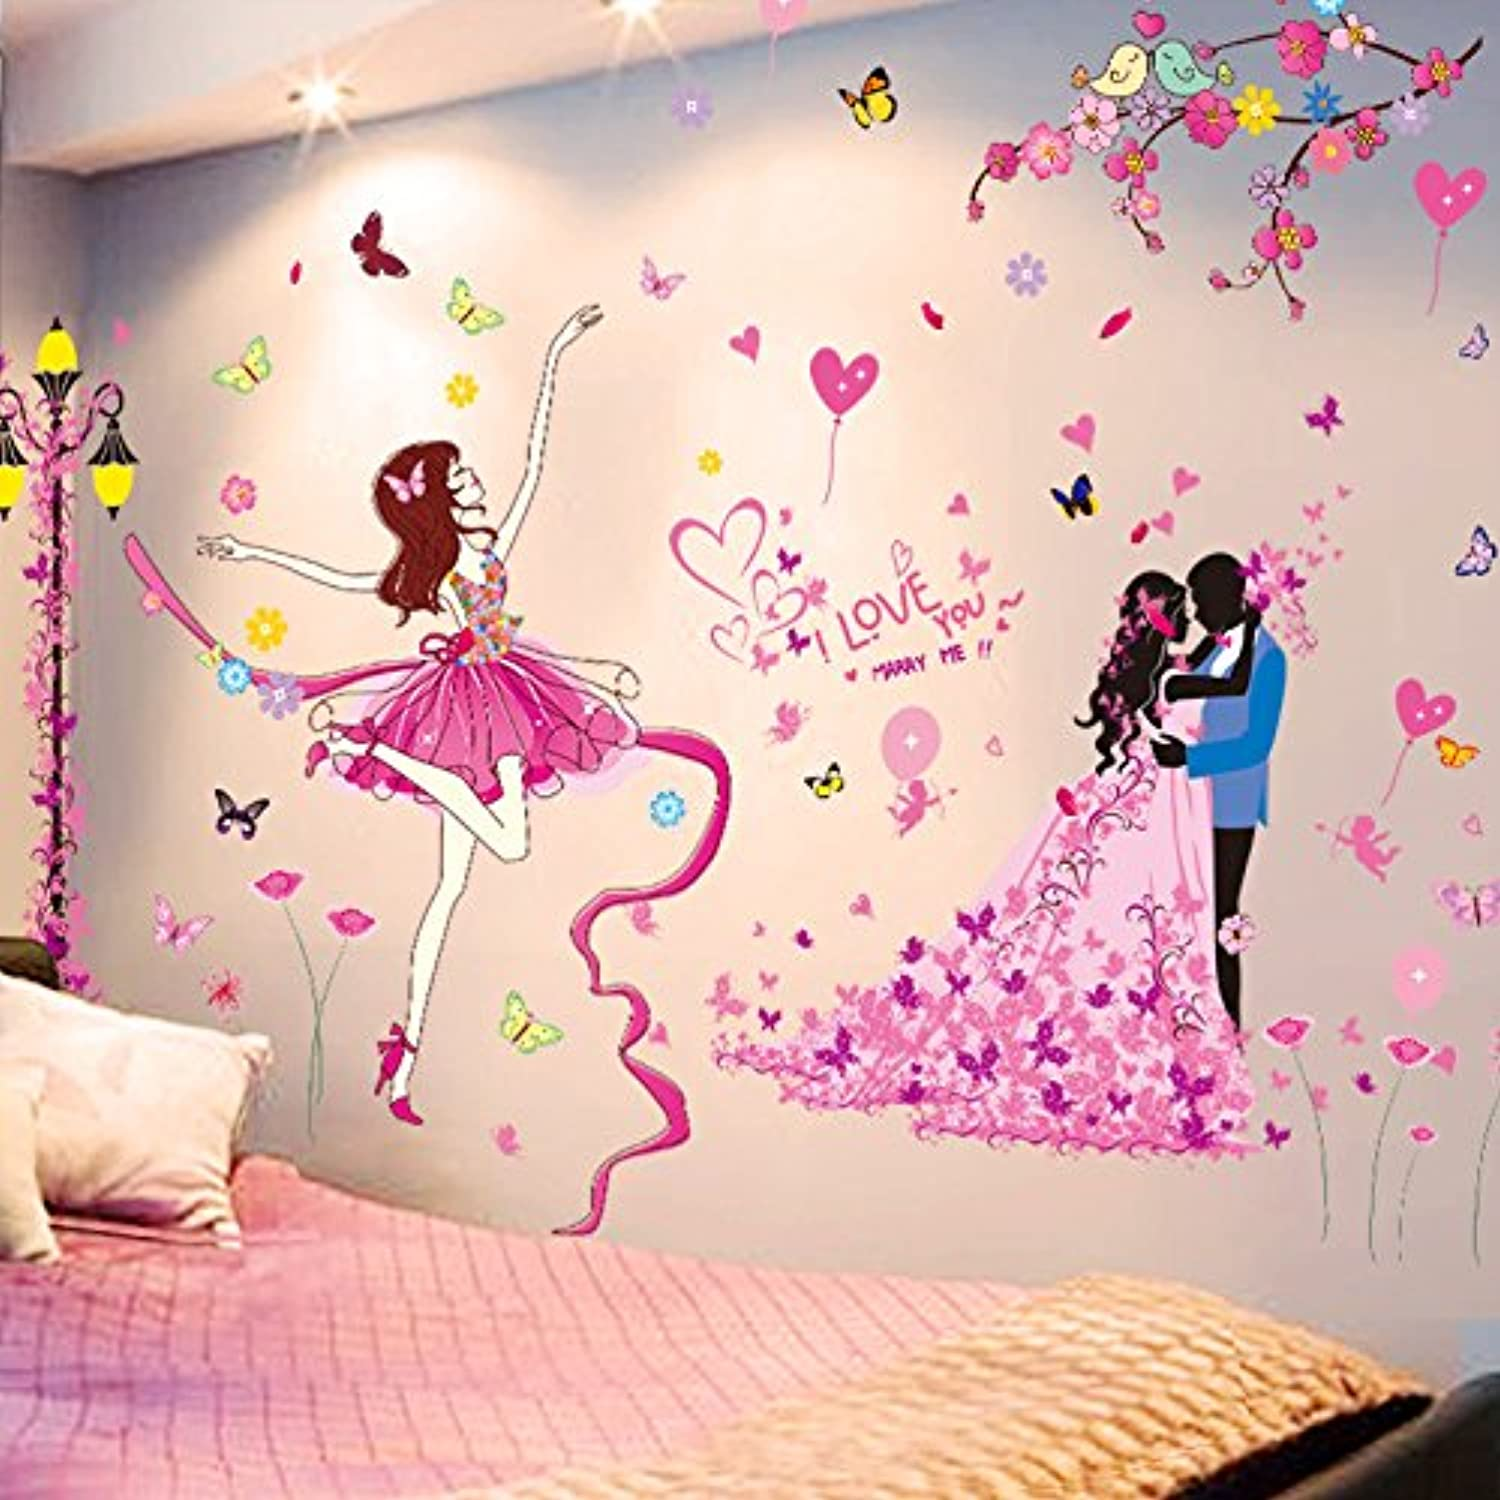 Znzbzt A Warm Wall Sticker Marriage Room self Adhesive Wallpaper Room Background Wall Decoration, Wall Paper Posters